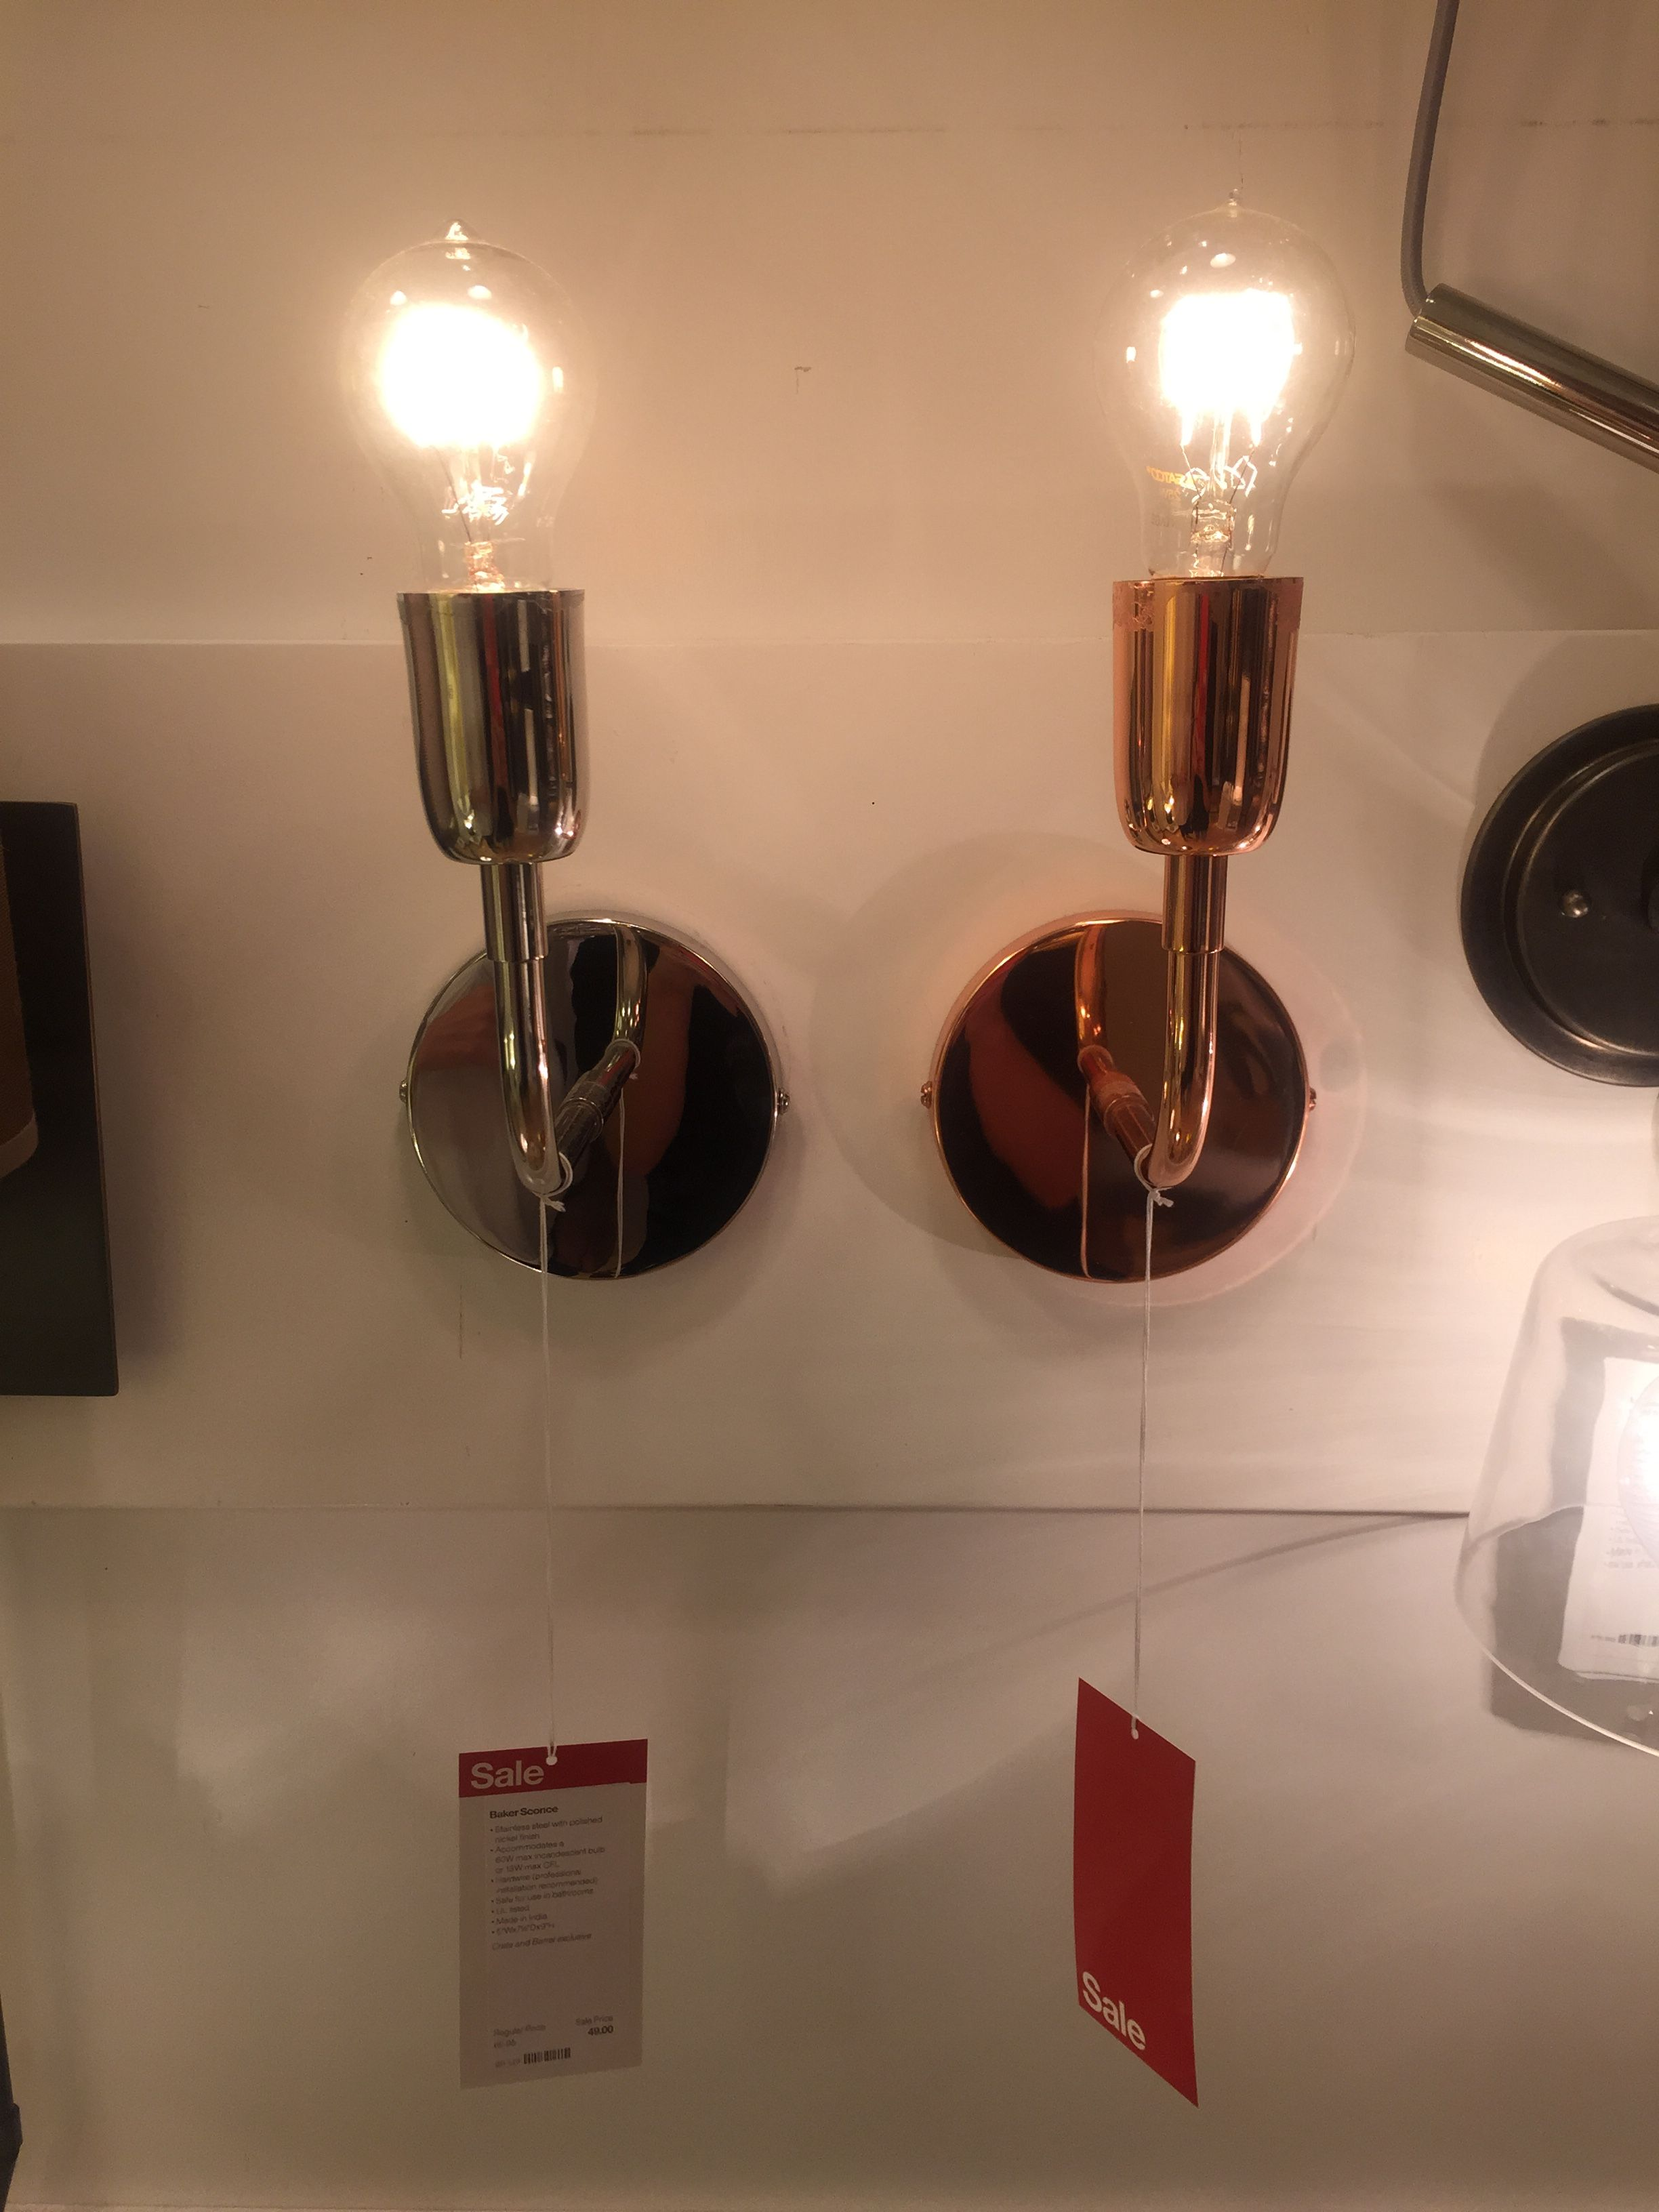 Crate and Barrel Light Light, Wall lights, Crate and barrel